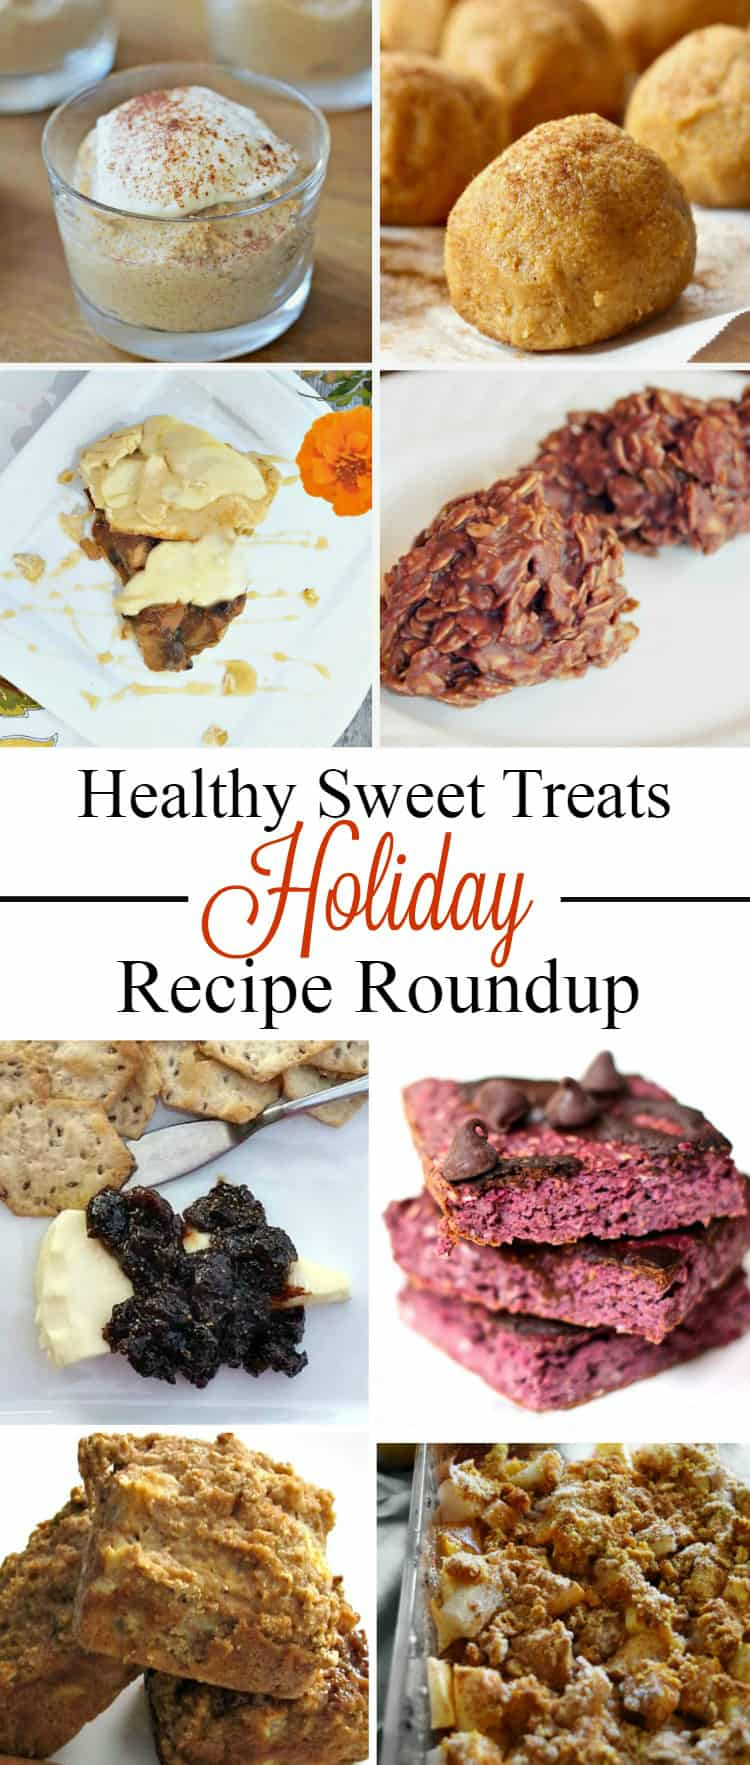 The holiday season is full of delicious treats!  But what do you do when you have food allergies and need to avoid most sugars?  I know that avoiding sweets during the holiday season has always been difficult for me.  If you are looking for healthy holiday desserts, then you've come to the right place!